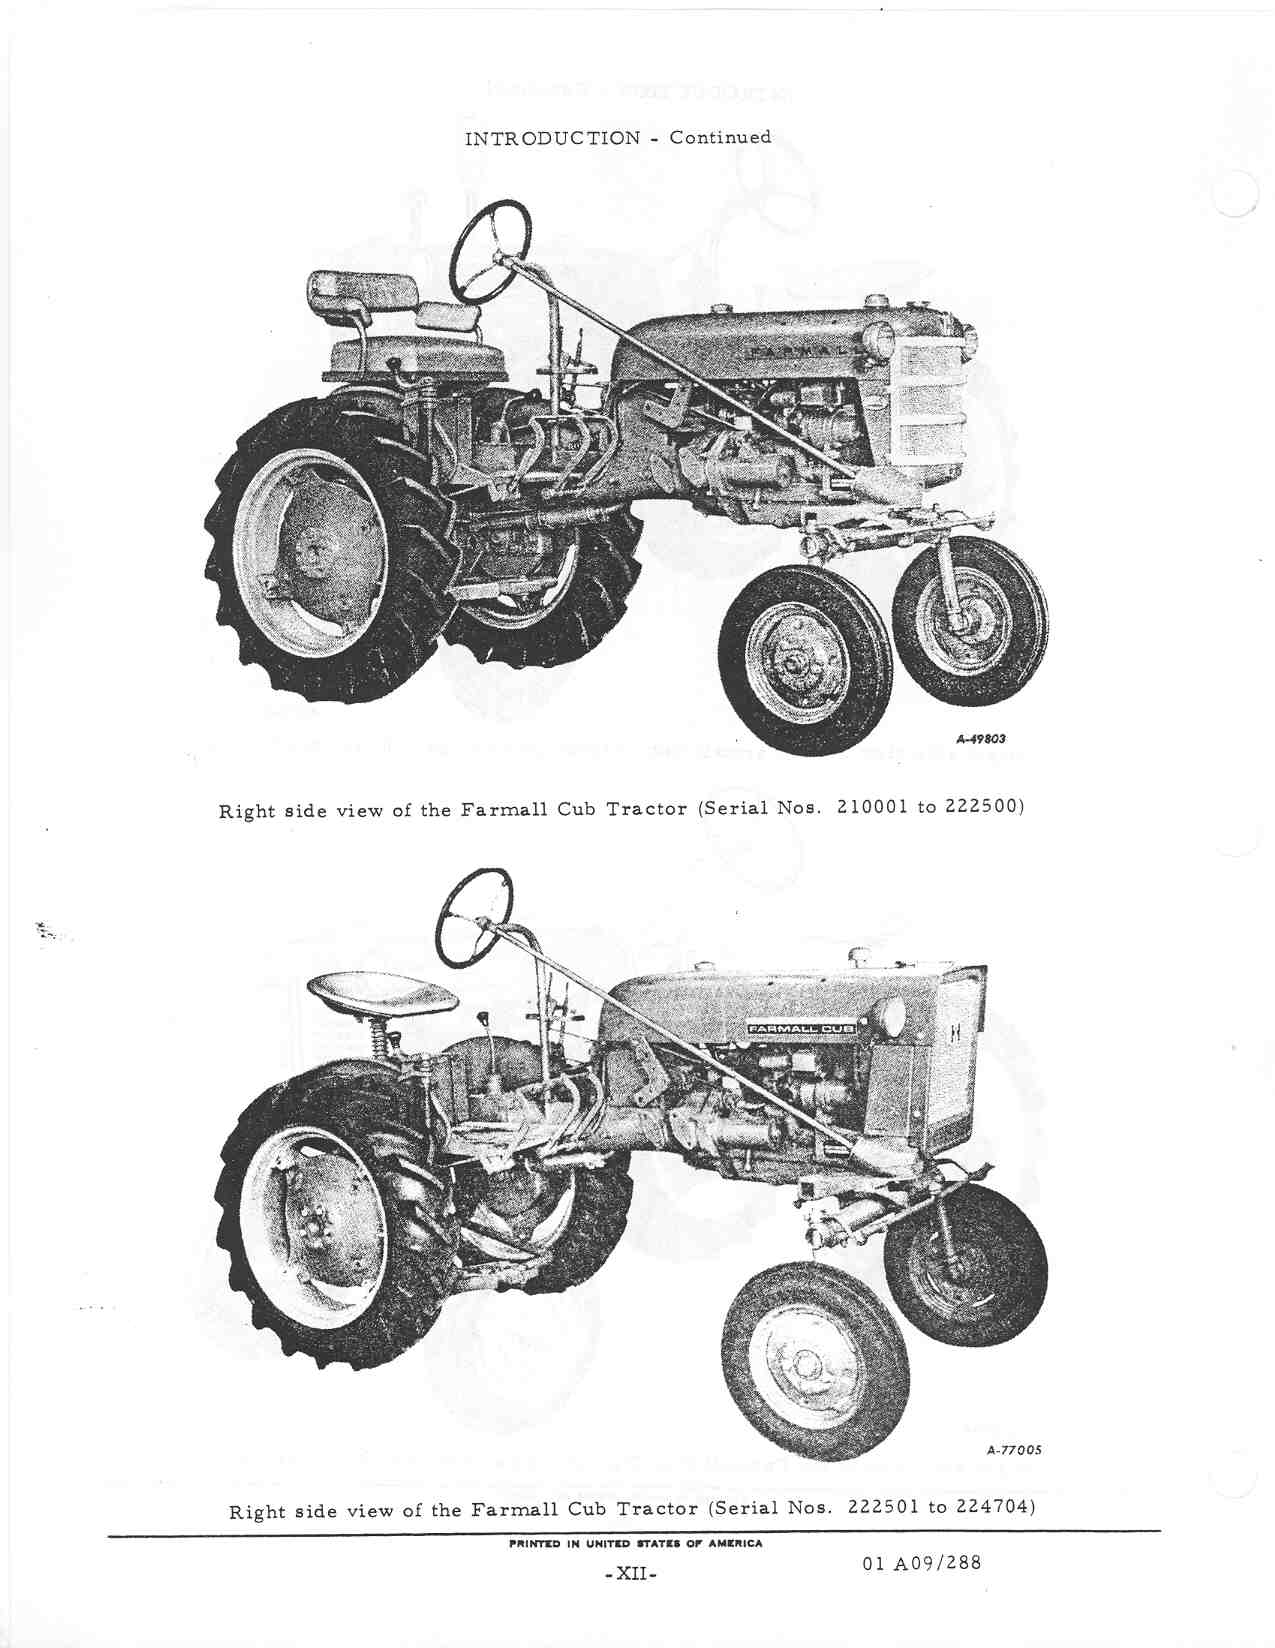 pin f cub parts images to pinterest